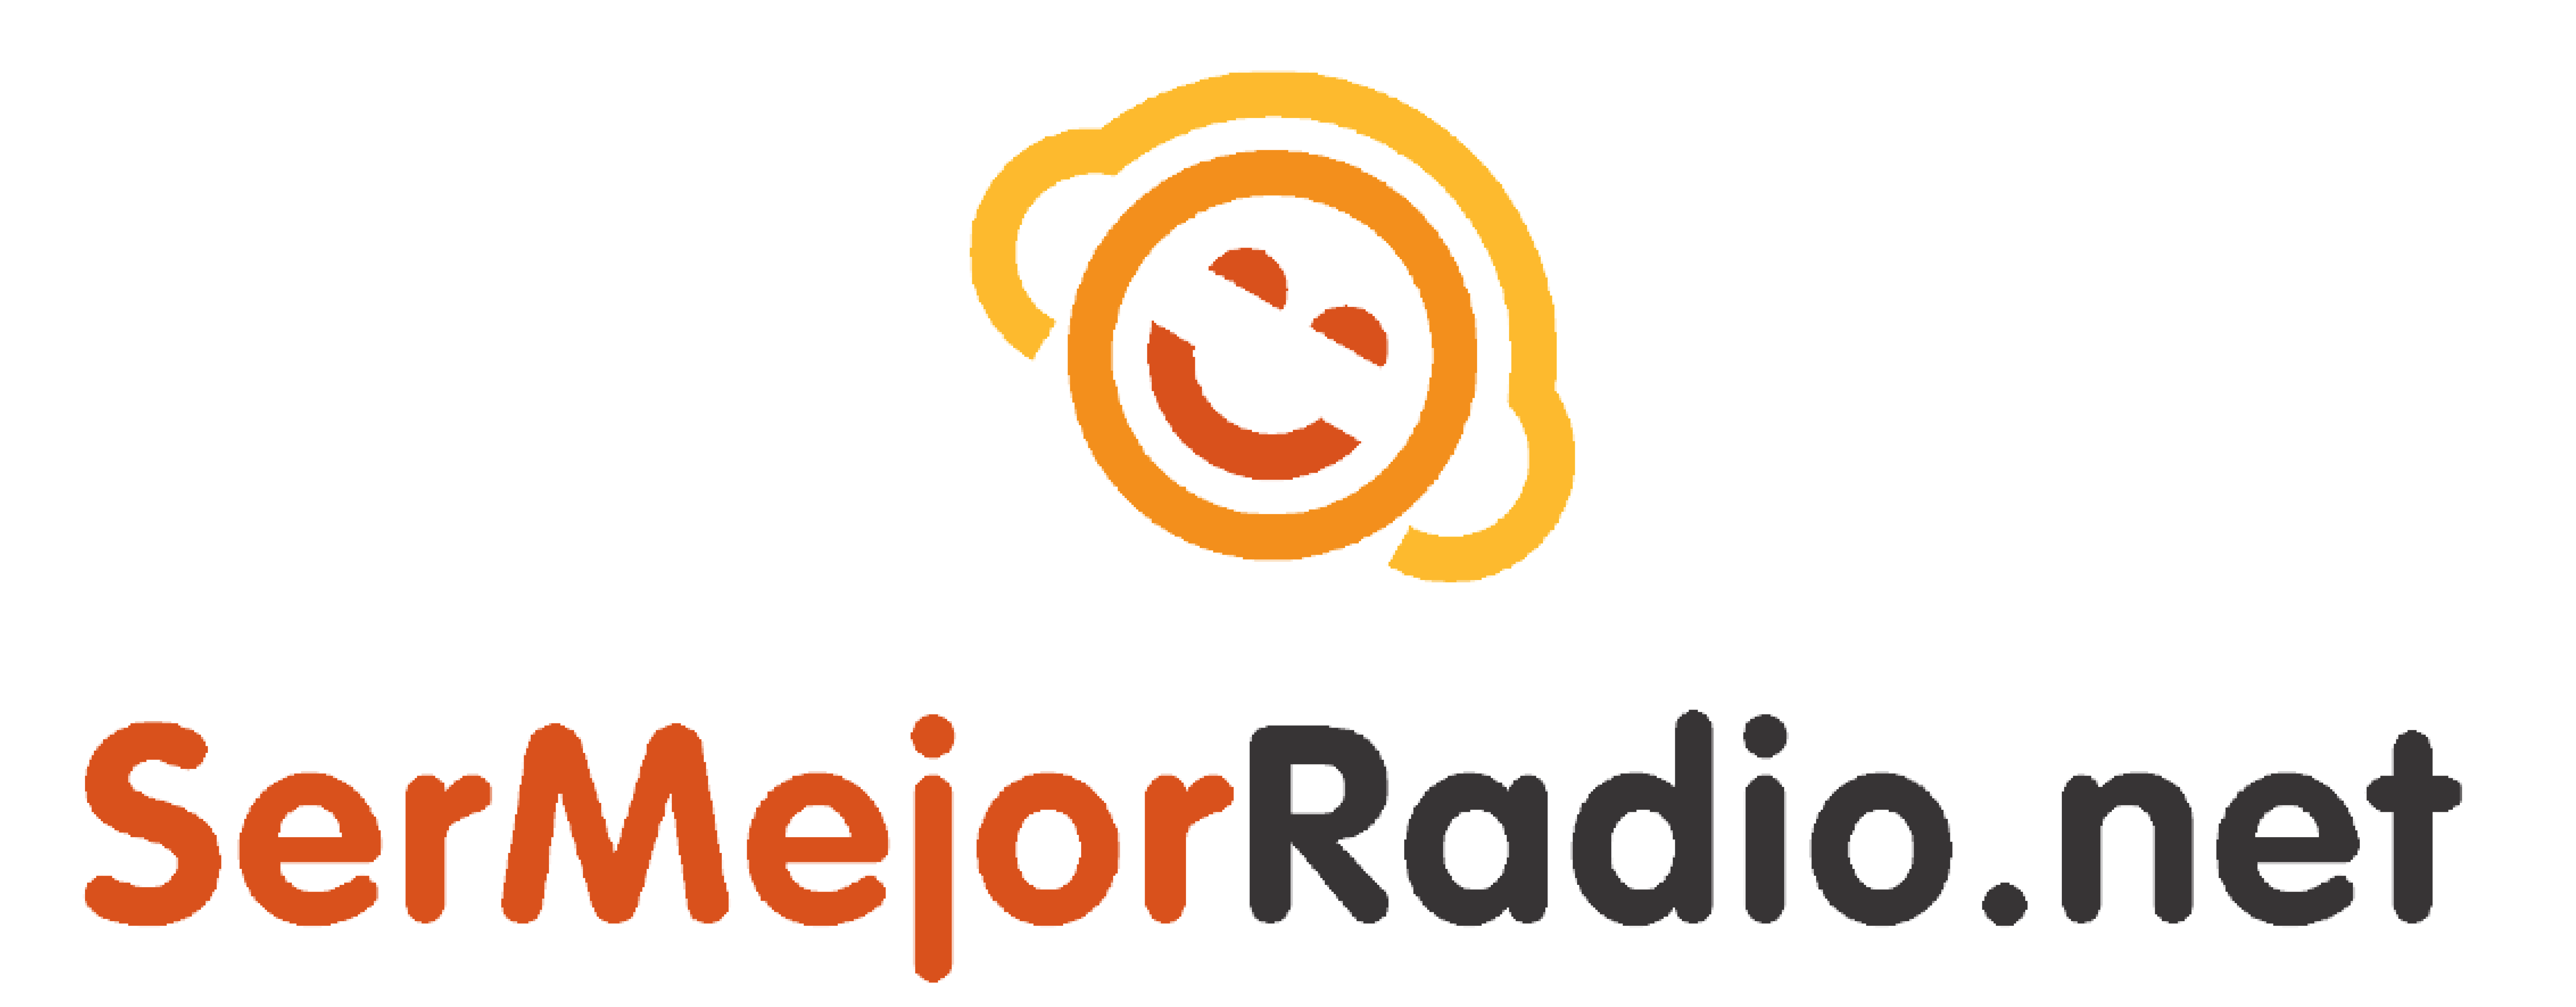 Sermejorradio